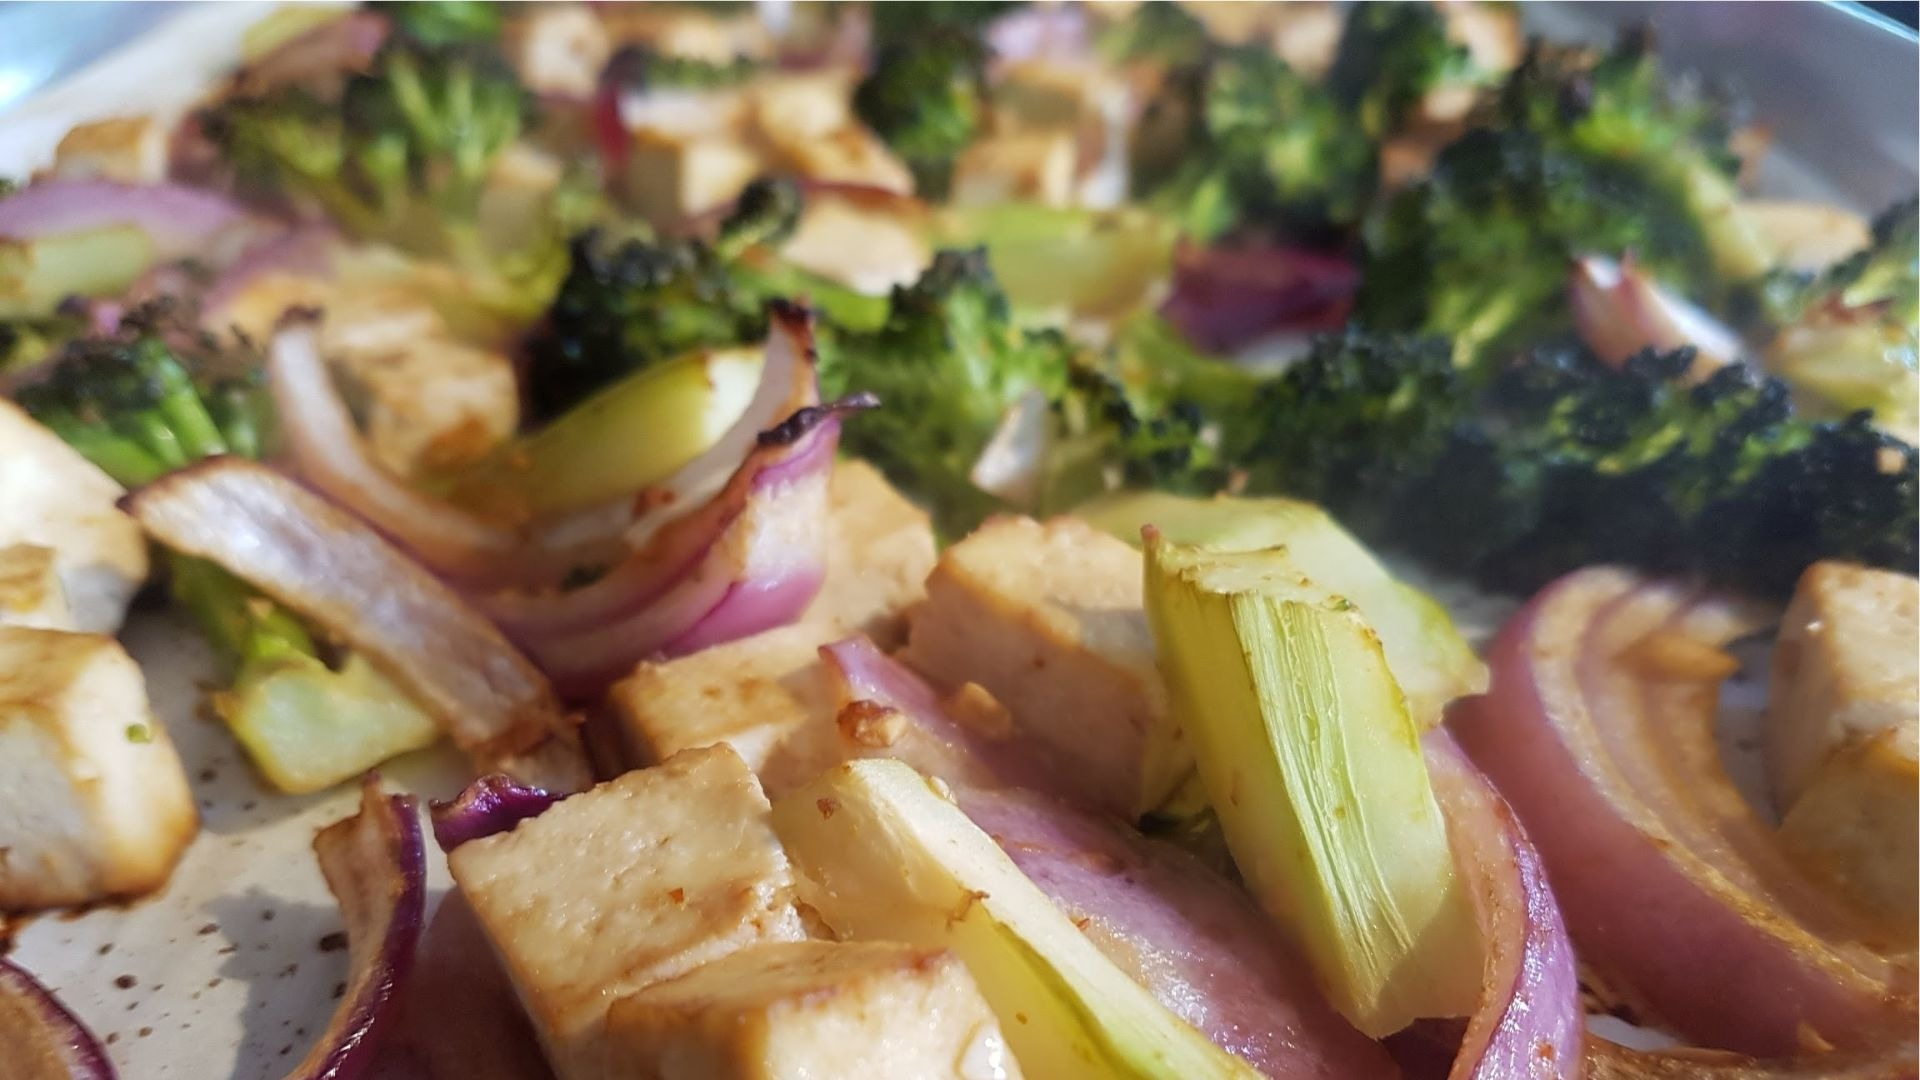 Roasted chopped red onion, broccoli, ginger and tofu